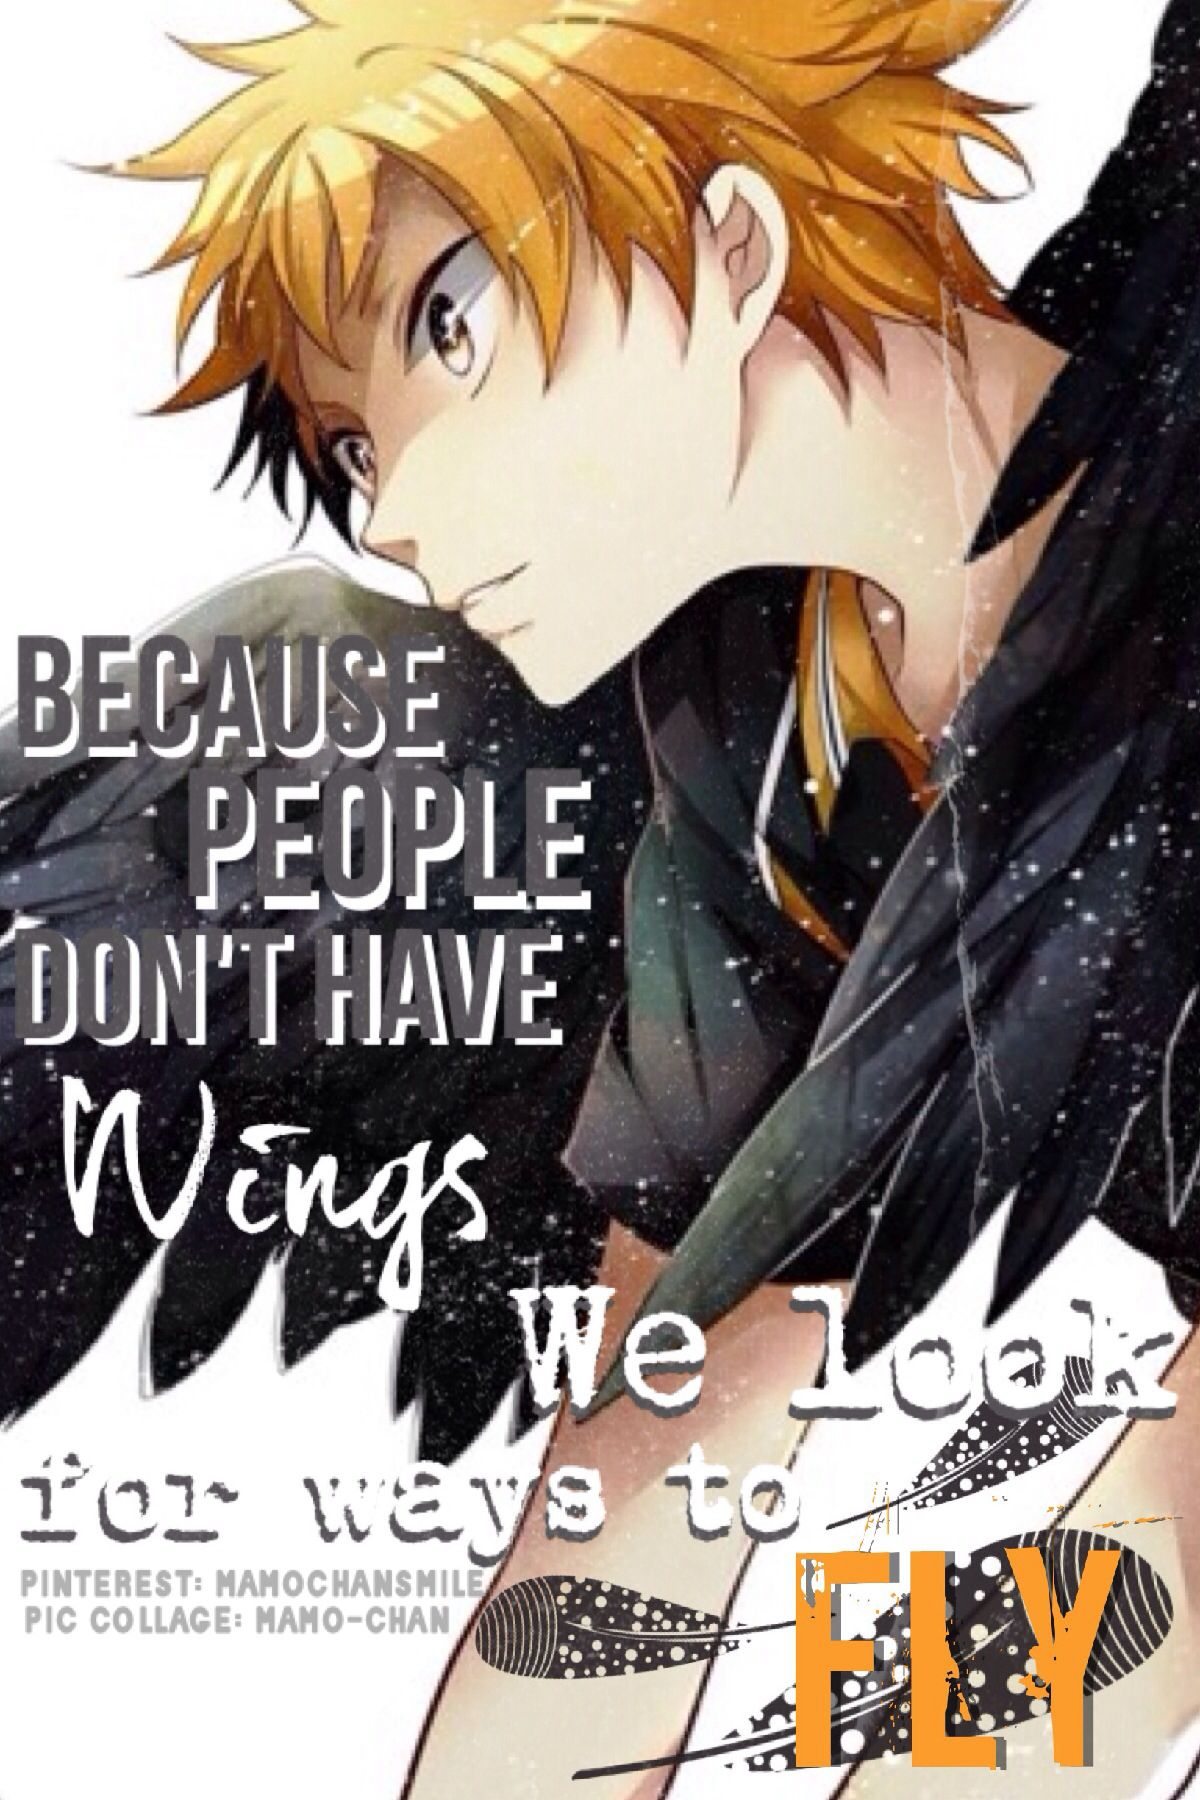 Haikyuu Quotes...Everytime i see it i feel more